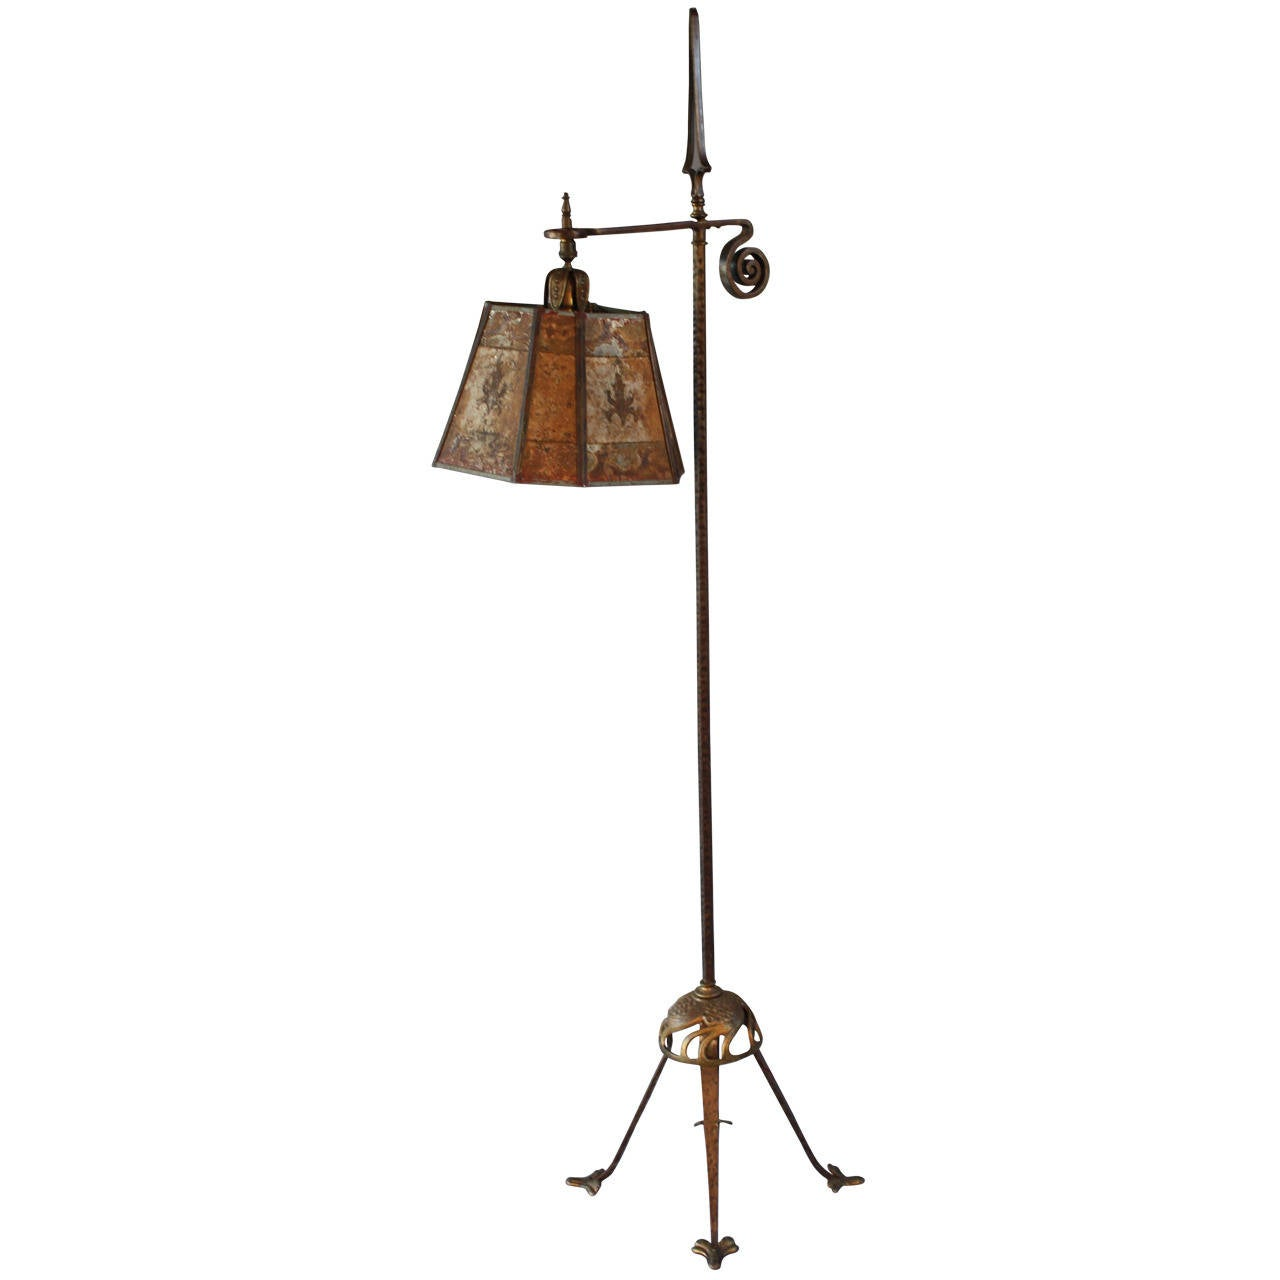 1920 39 s floor lamp in the style of oscar bach at 1stdibs for 1920s floor lamps